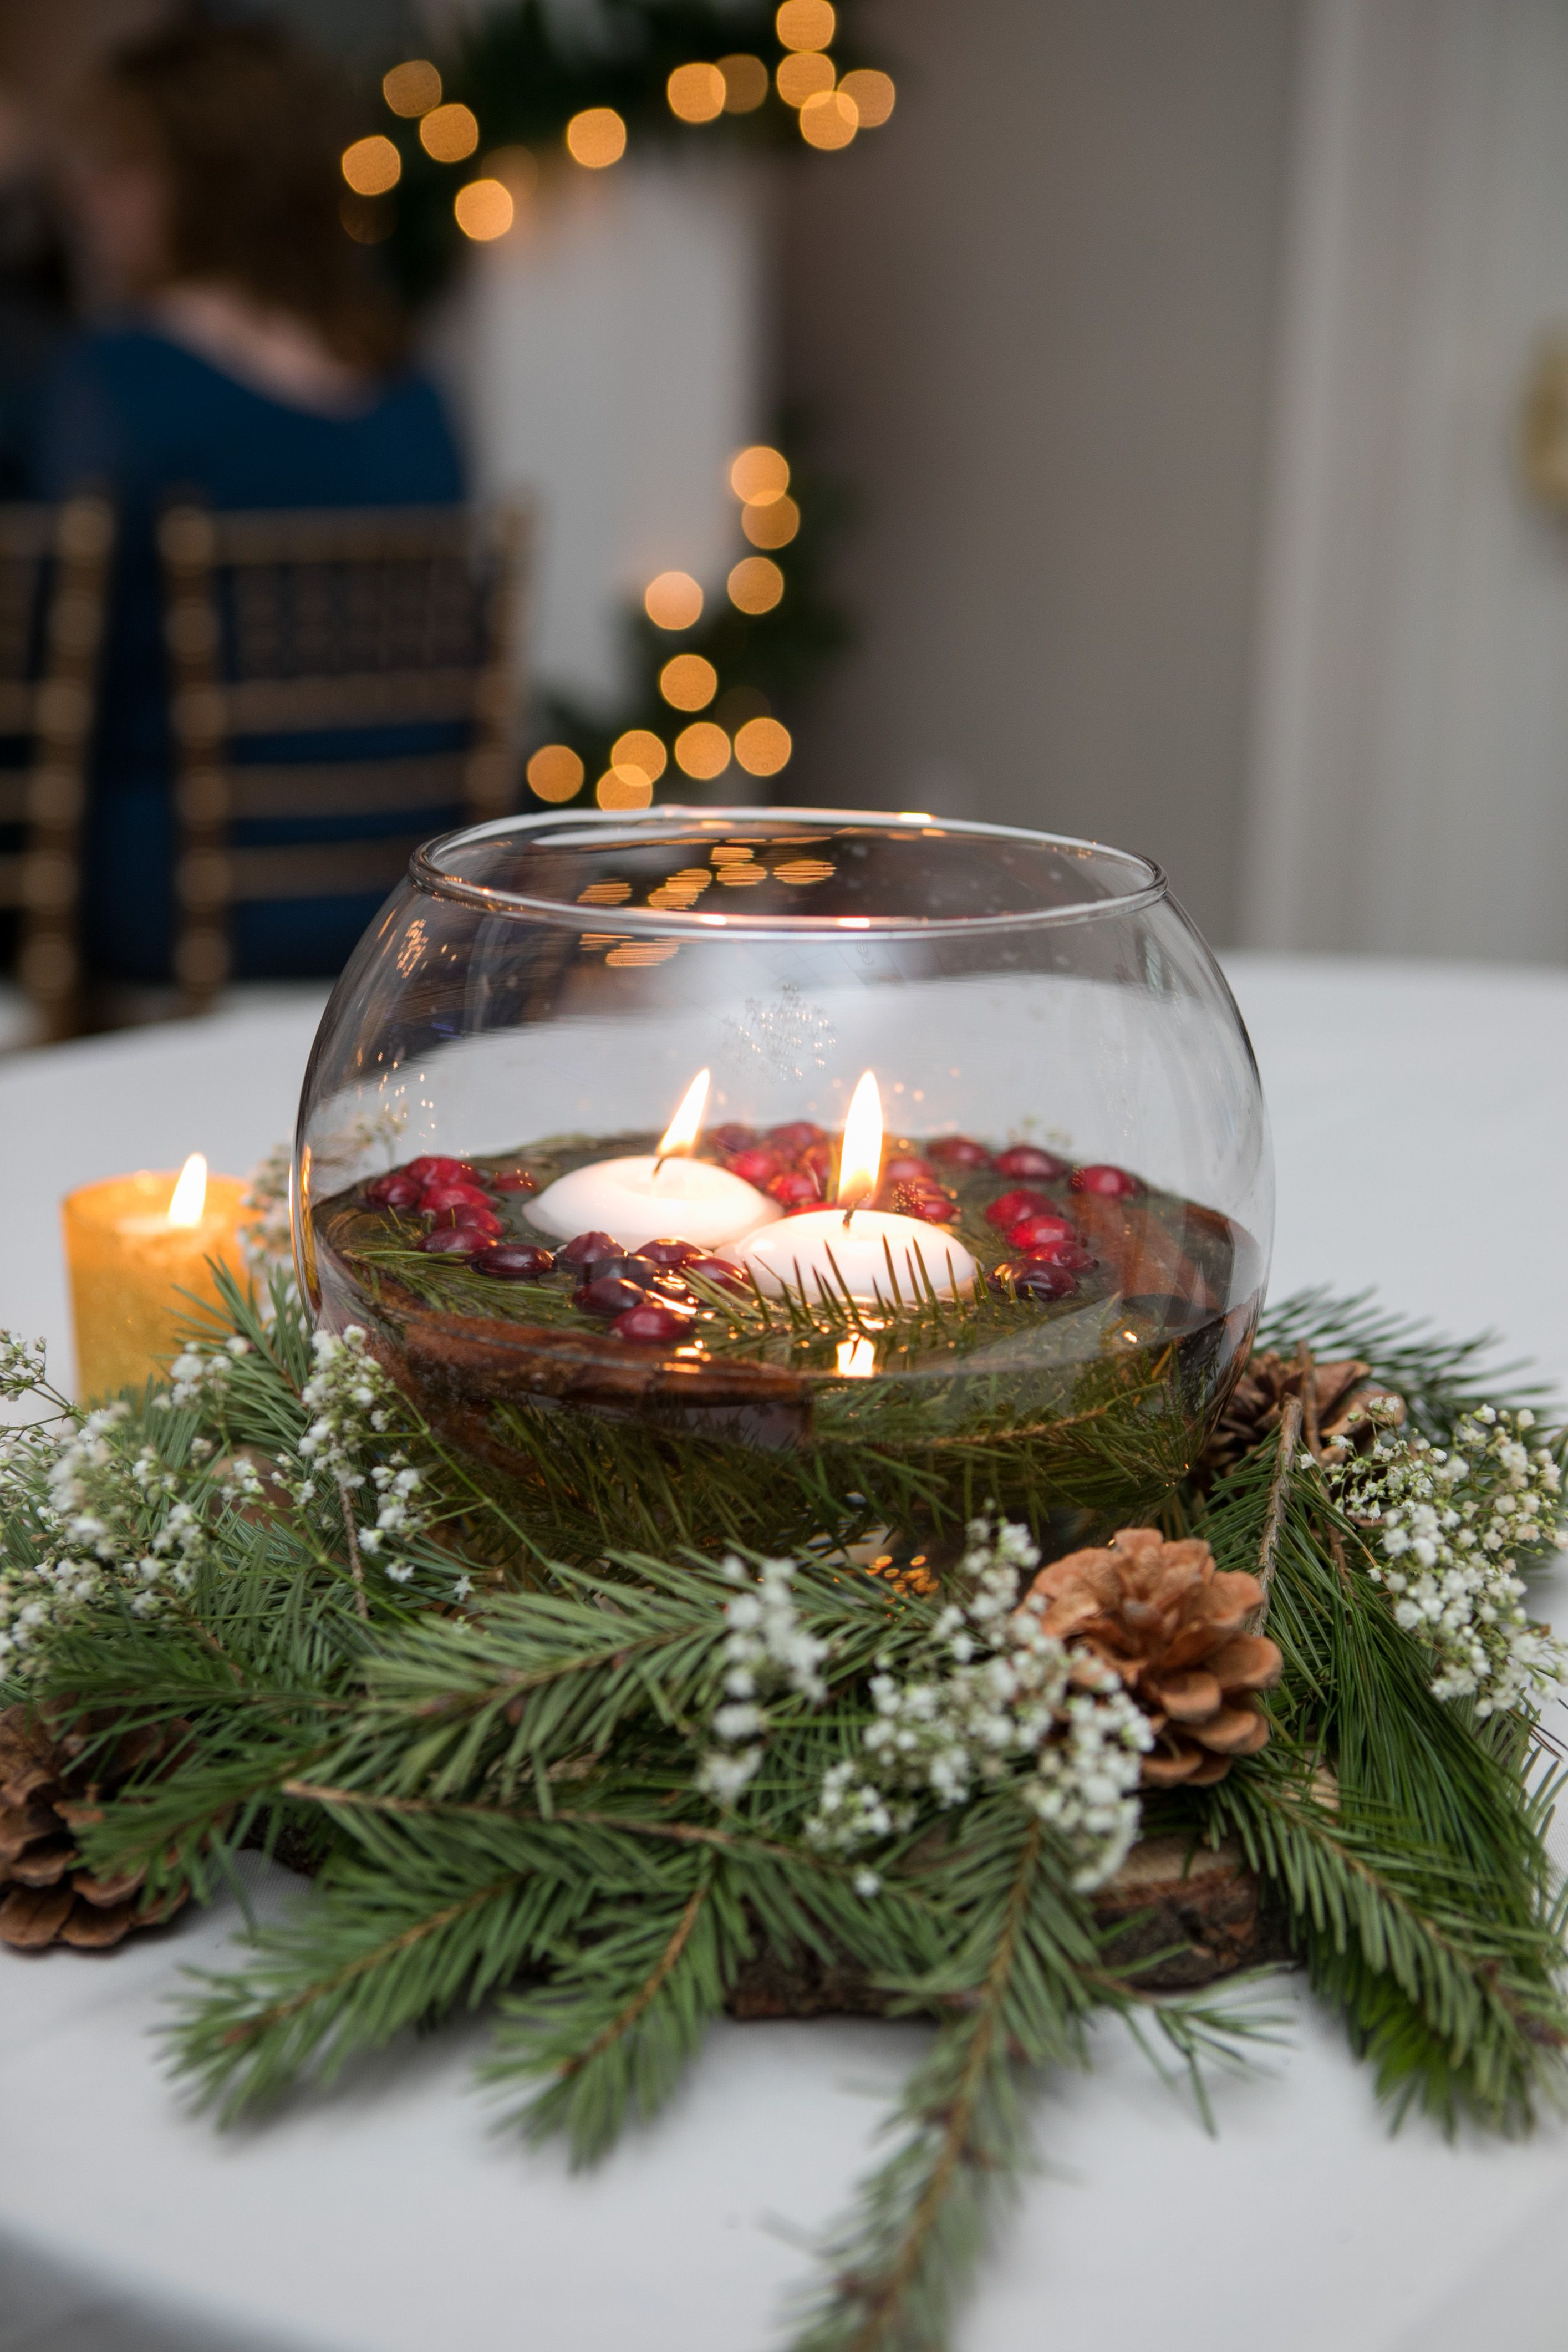 Winter Wedding Centerpieces Floating Candles Greens Floating Candle Centerpieces Floating Candle Centerpieces Wedding Winter Wedding Centerpieces